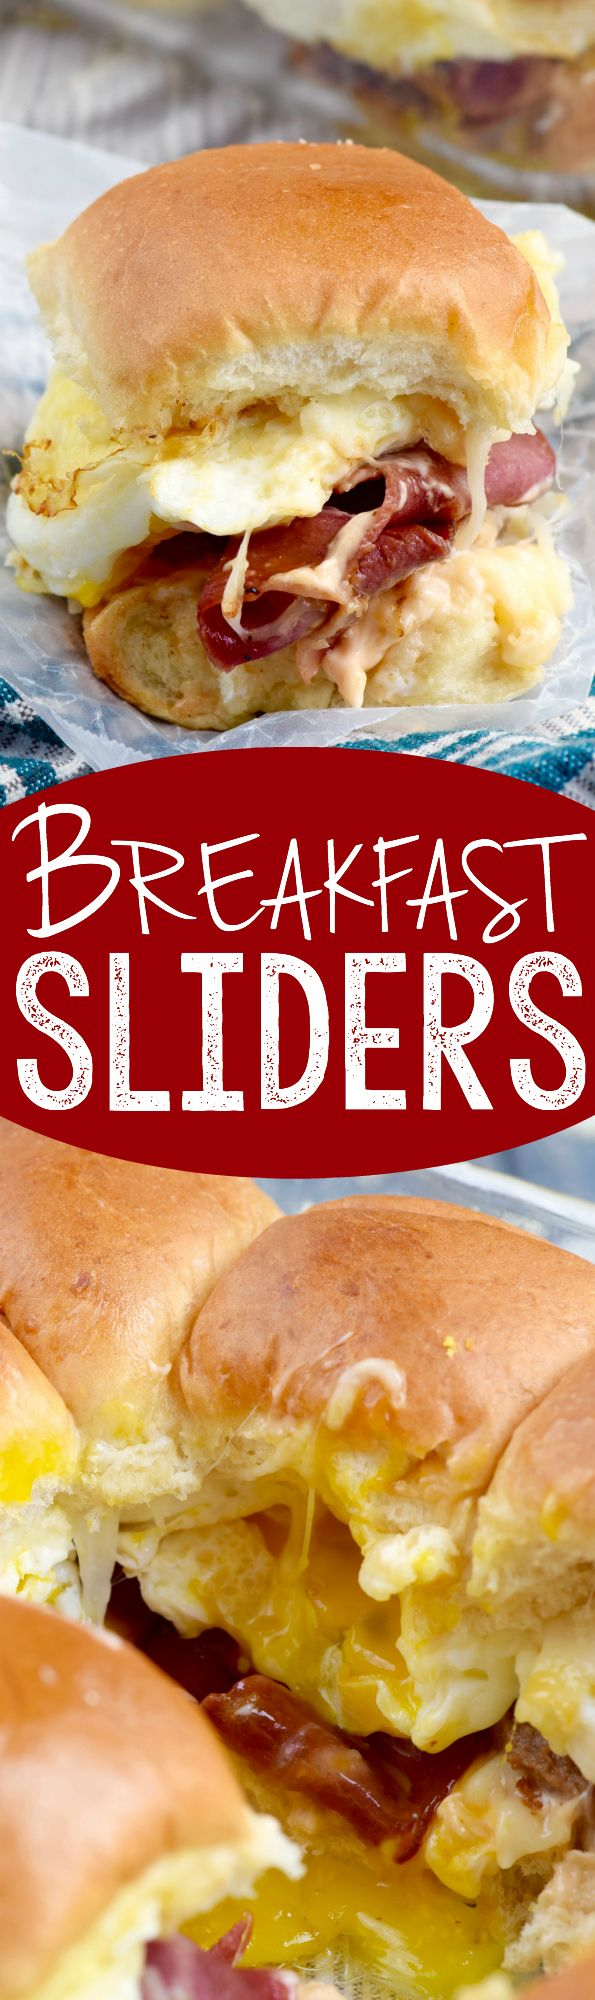 These Breakfast Sliders are gooey, delicious, and perfect for feeding a crowd!